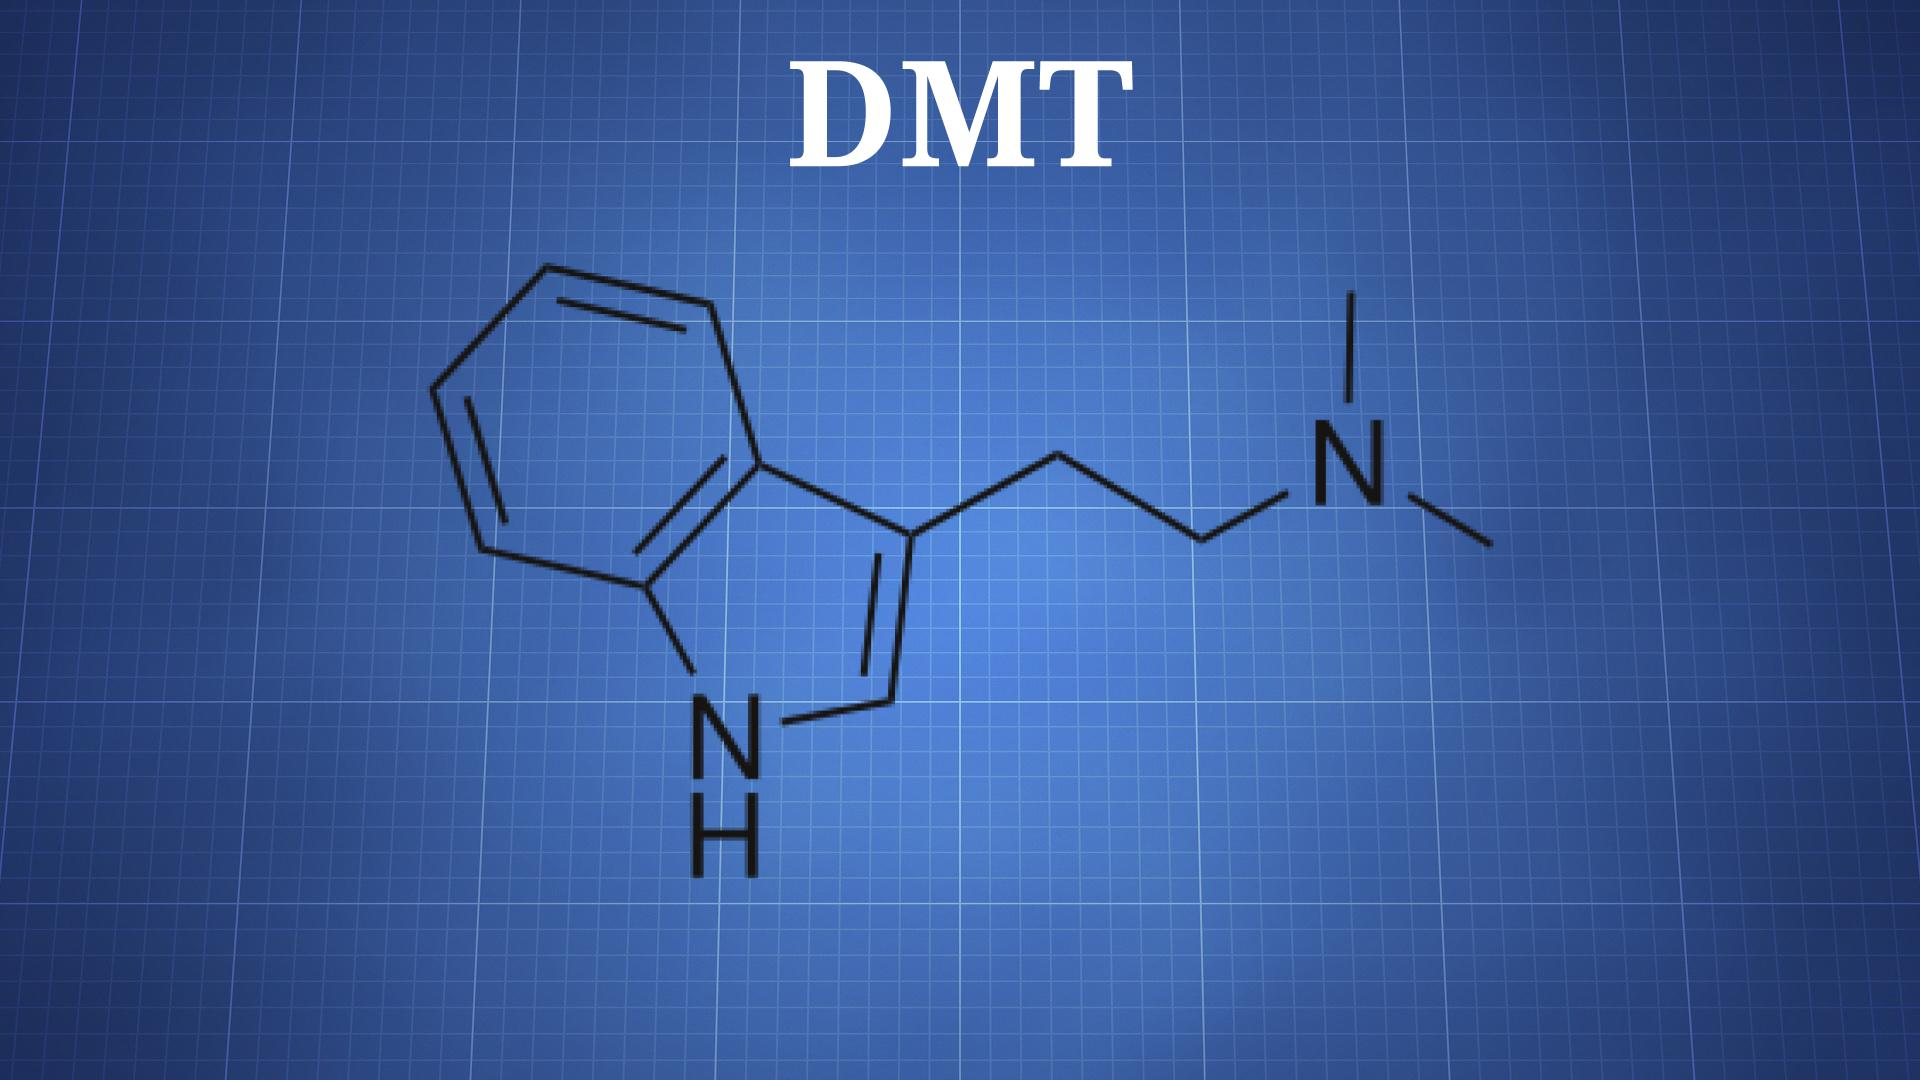 characteristics and effects of dmt n n dimethyltryptamine a psychedelic drug N,n-dimethyltryptamine (dmt)  a large part of dmt psychedelic effects can be attributed to a specific  a psychedelic drug structurally similar to n,n-dmt,.